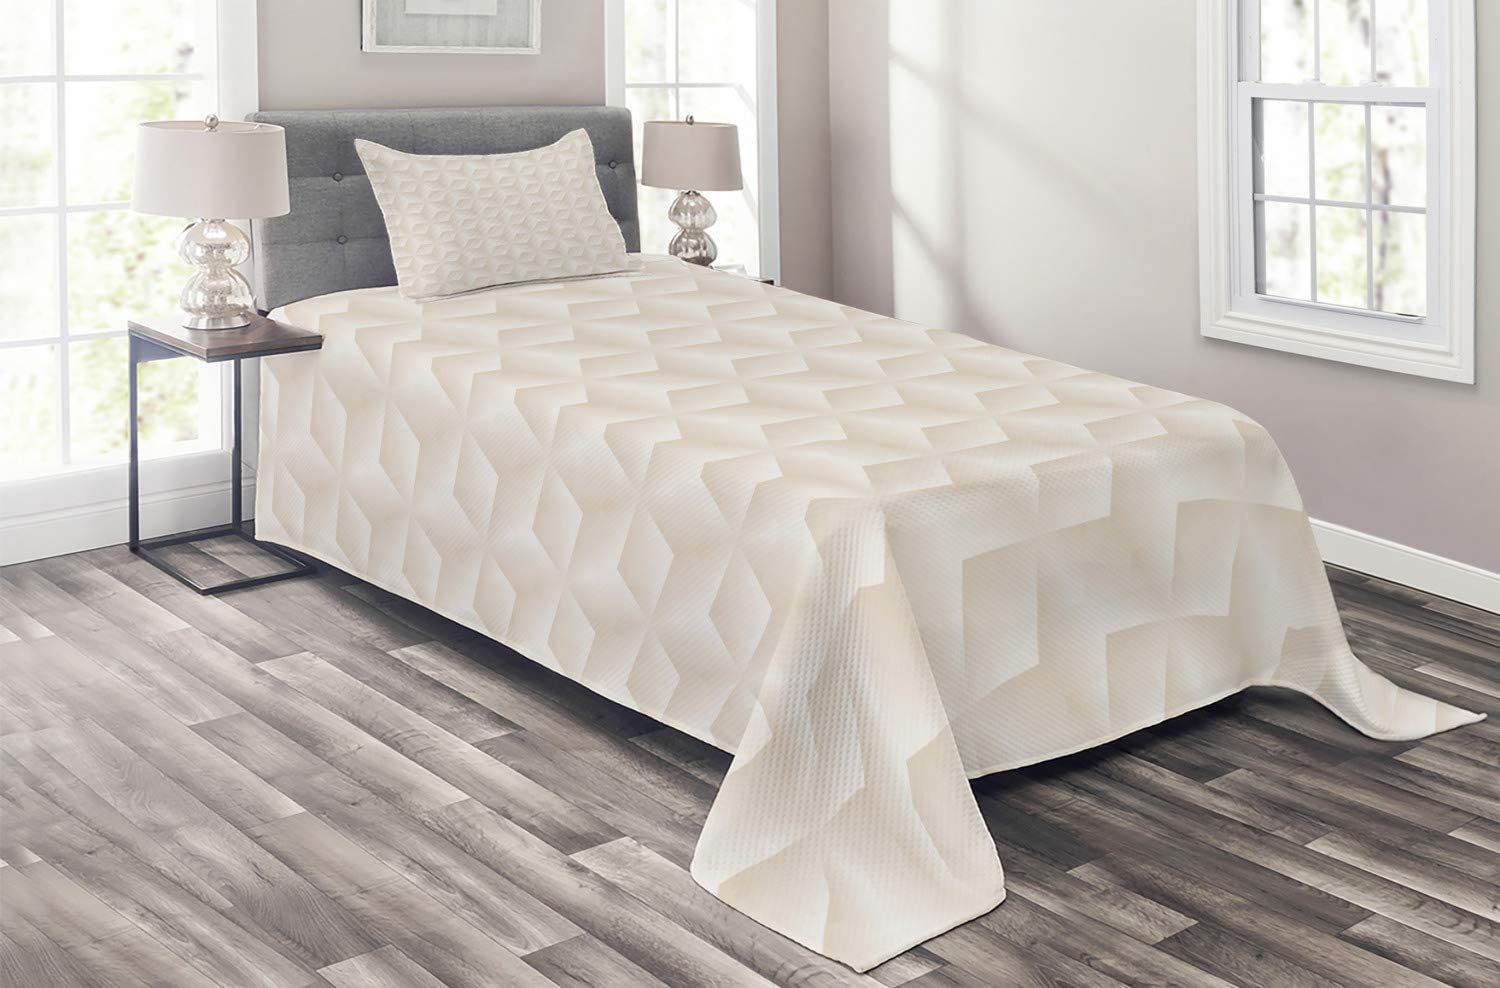 Ambesonne Ivory Coverlet Credence 35% OFF Geometric Diamond Continuous Diagonal